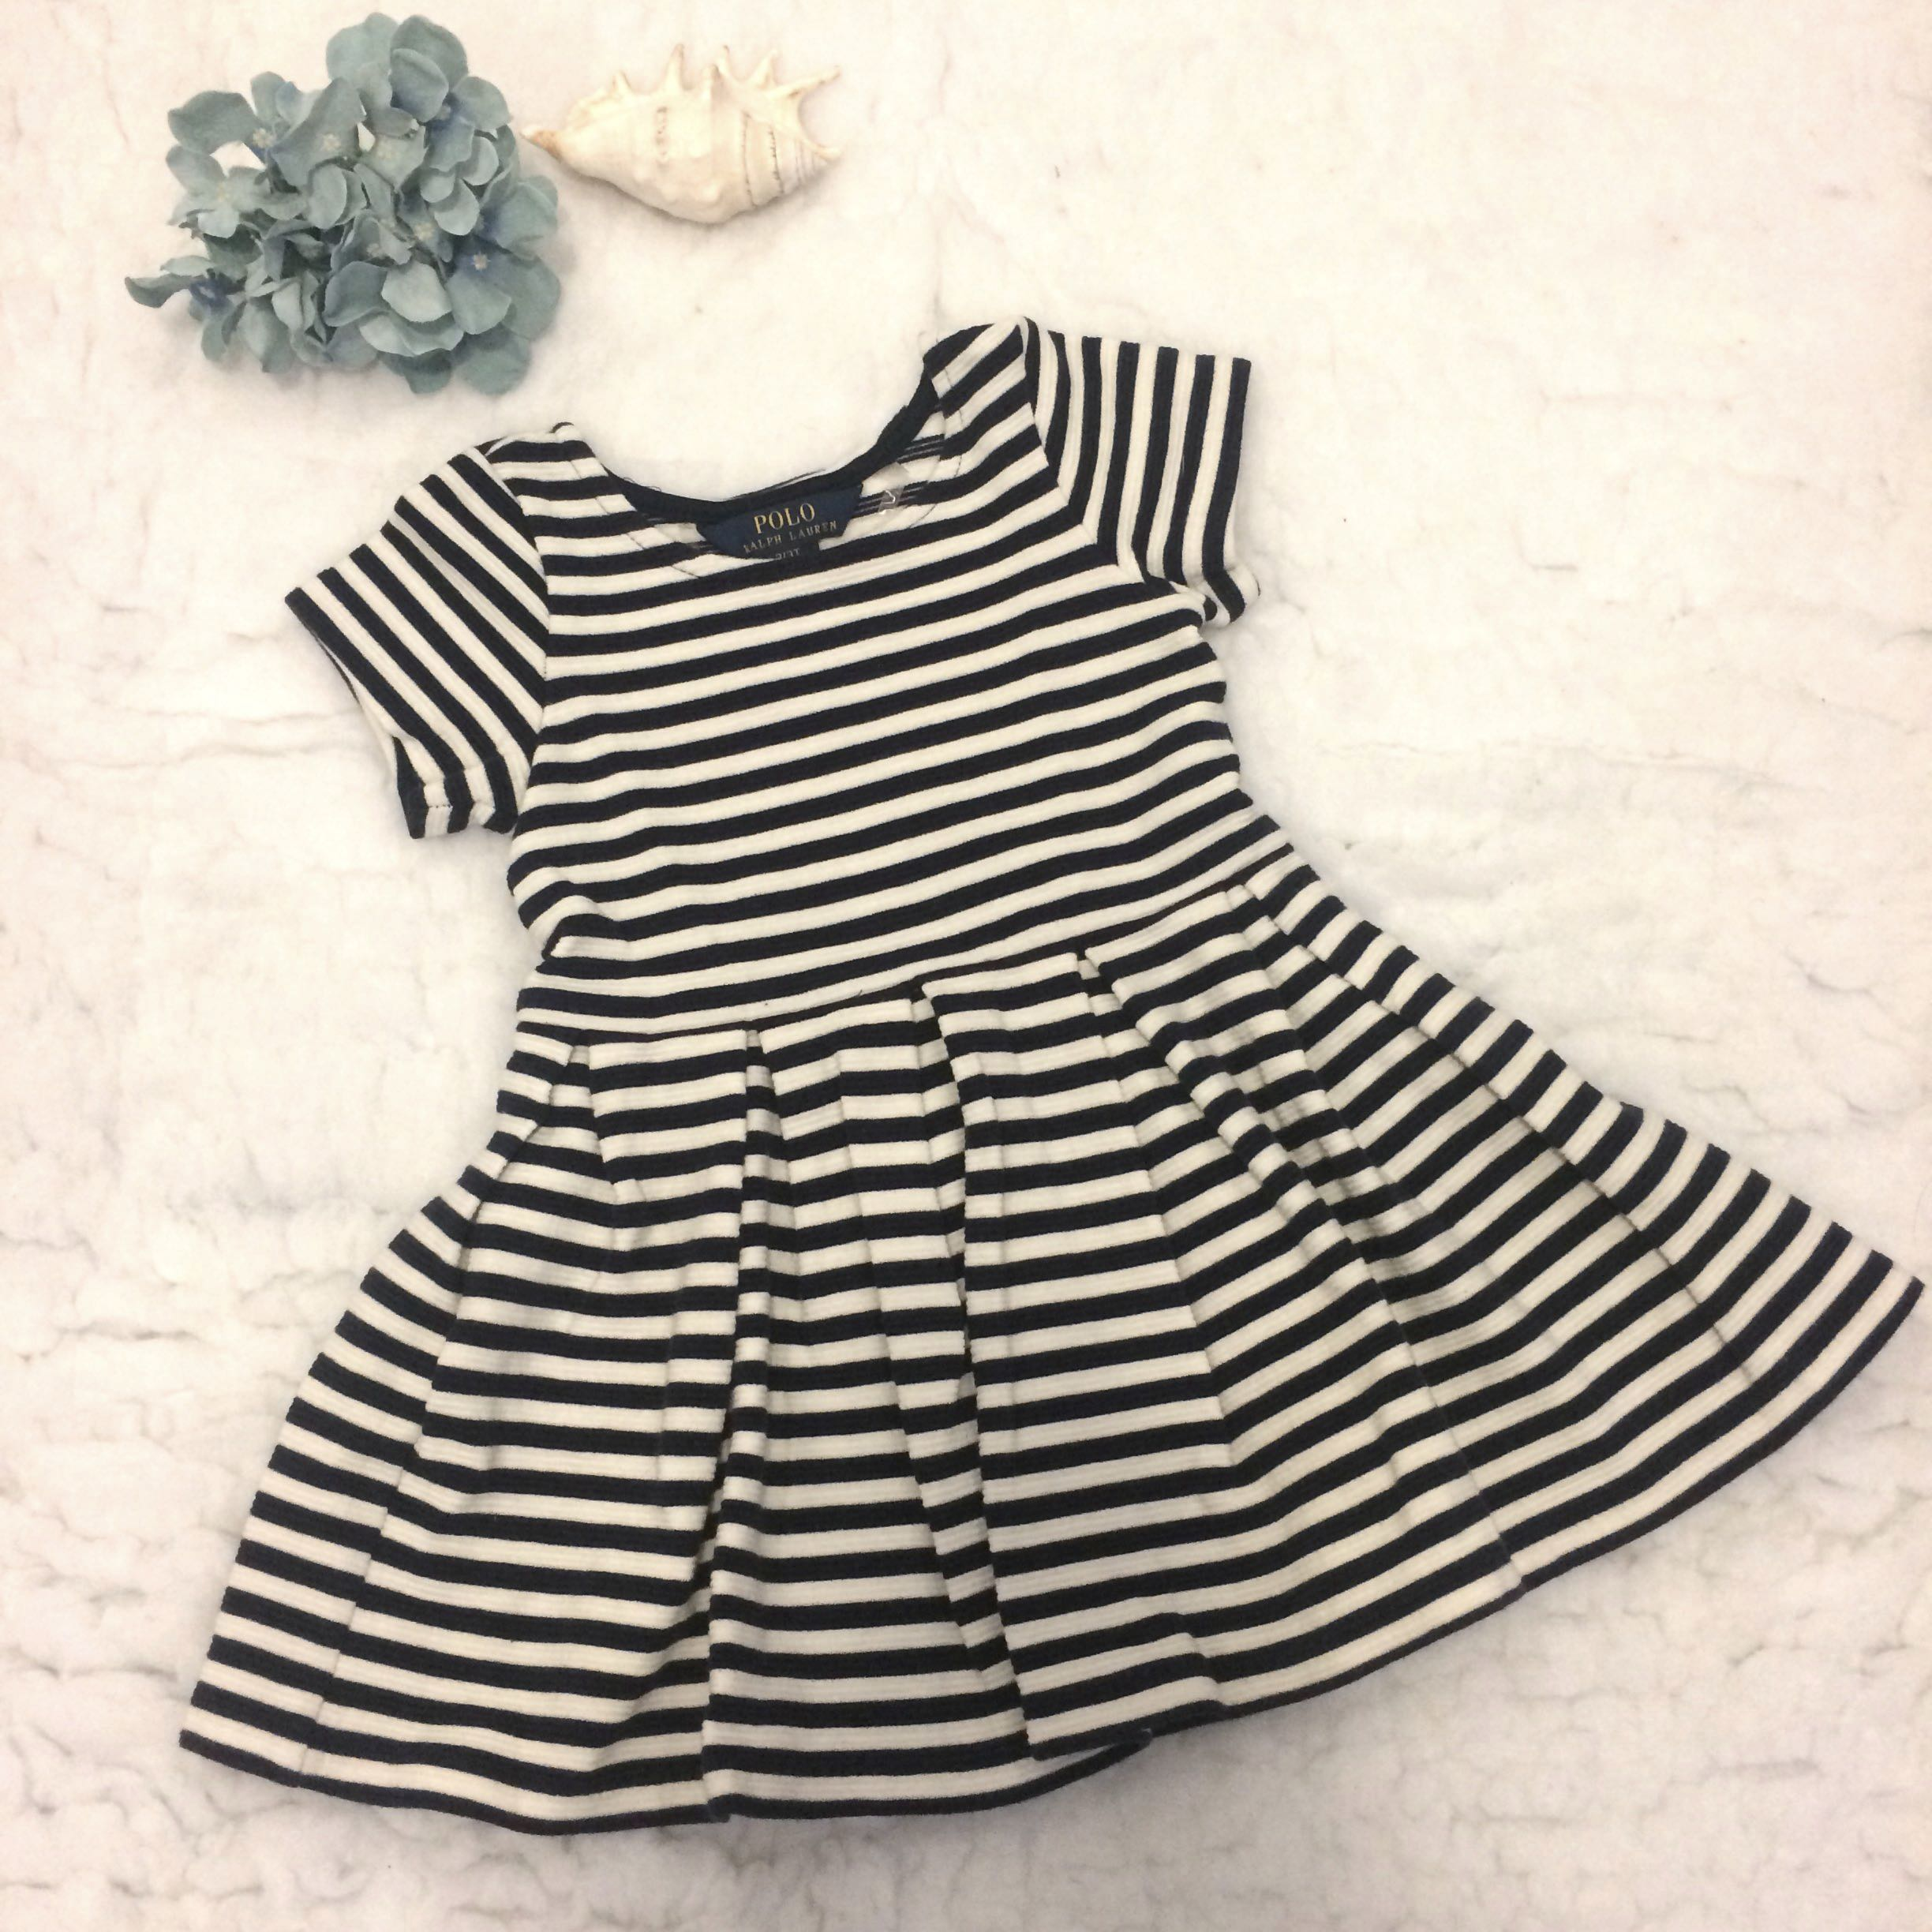 f3c26fde5 Polo Ralph Lauren Kids Striped Pleated Ponte Dress, Babies & Kids ...